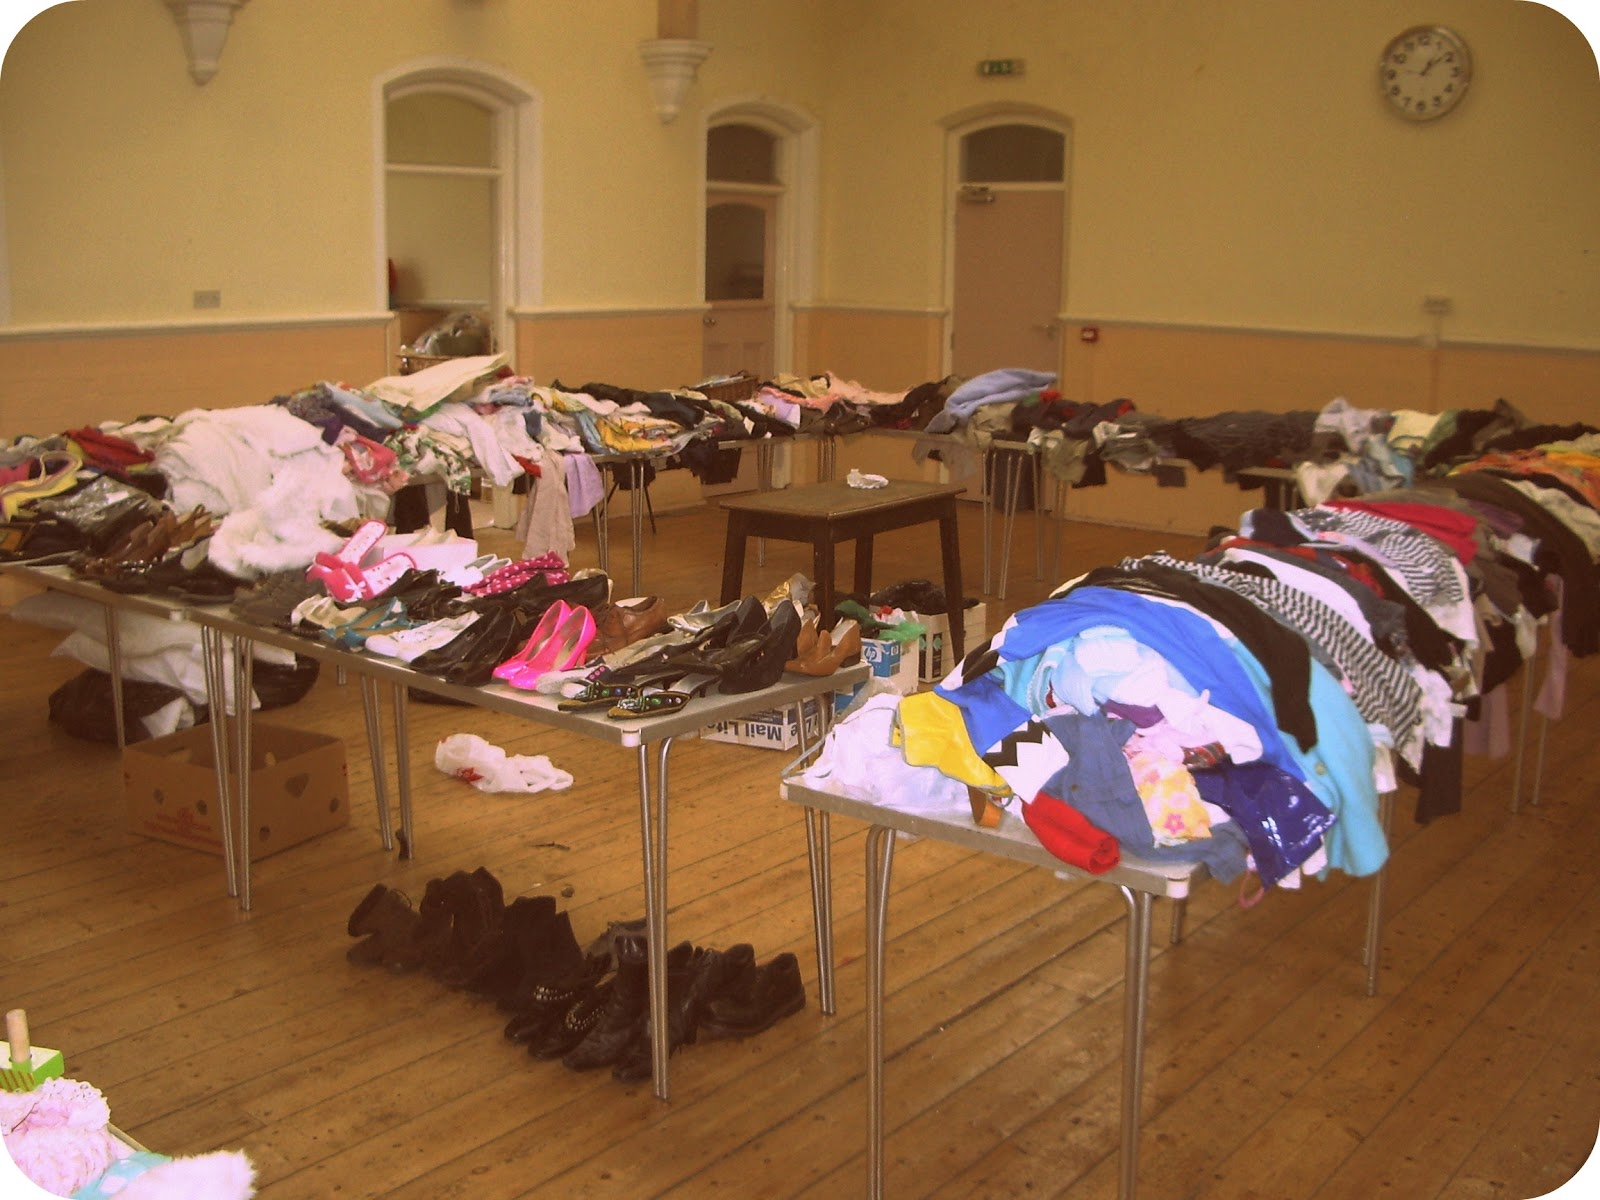 This is what your average jumble looks like before it opens the doors